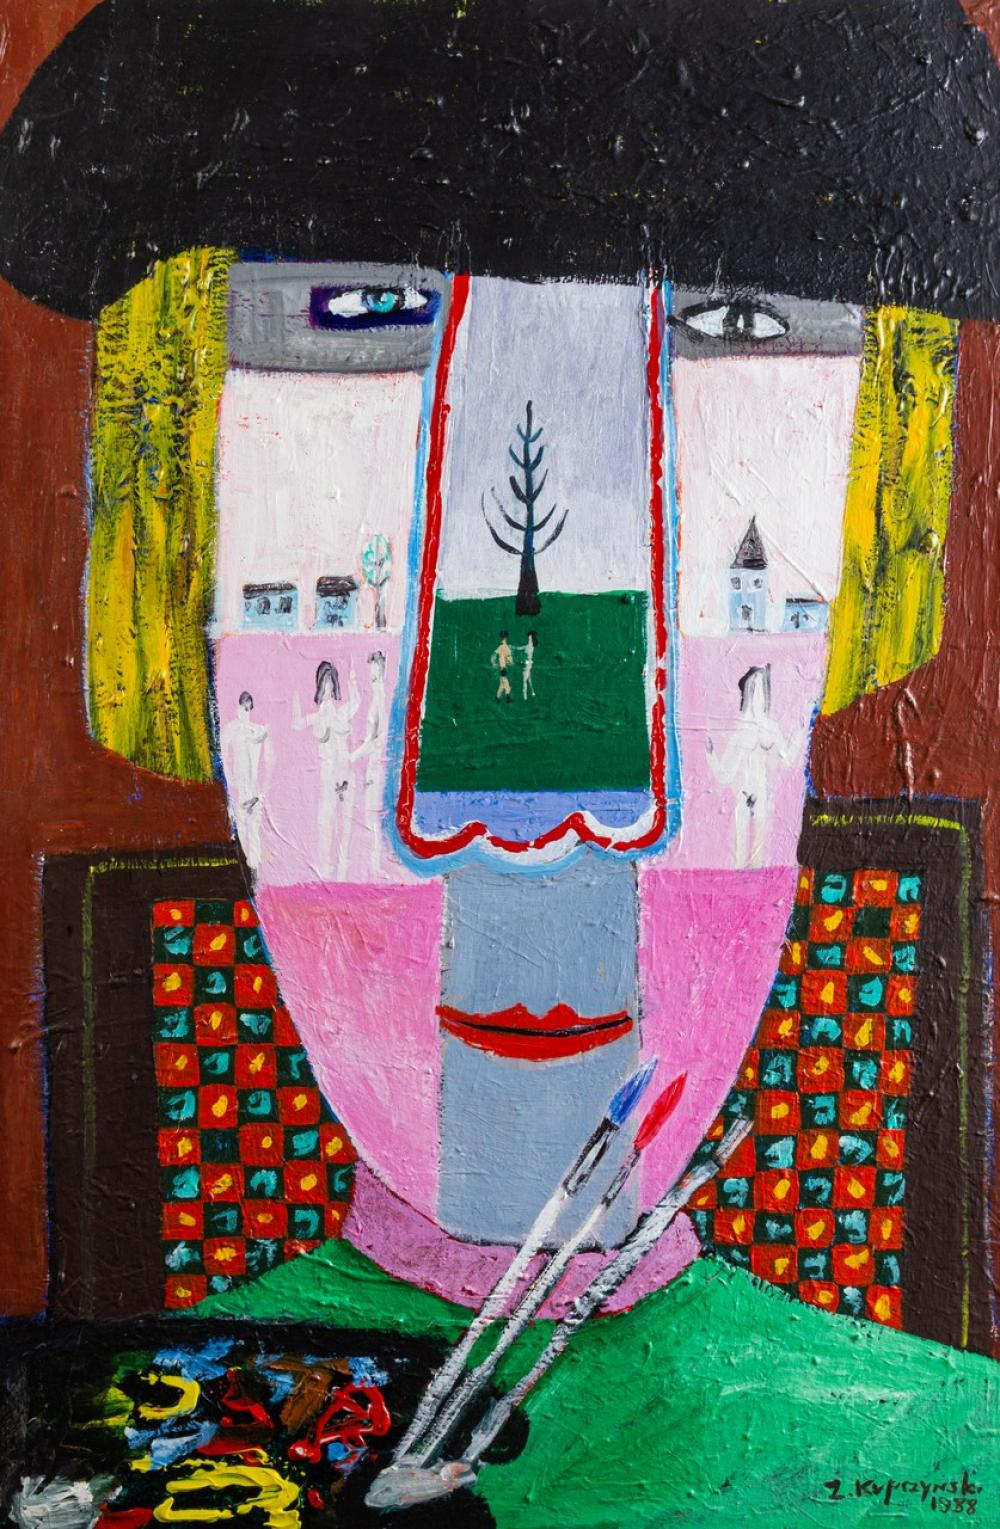 Zbigniew Kupczynski, Canadian (1928- ), The Painter, oil on canvas, 36 x 24 in. (91.4 x 61 cm)